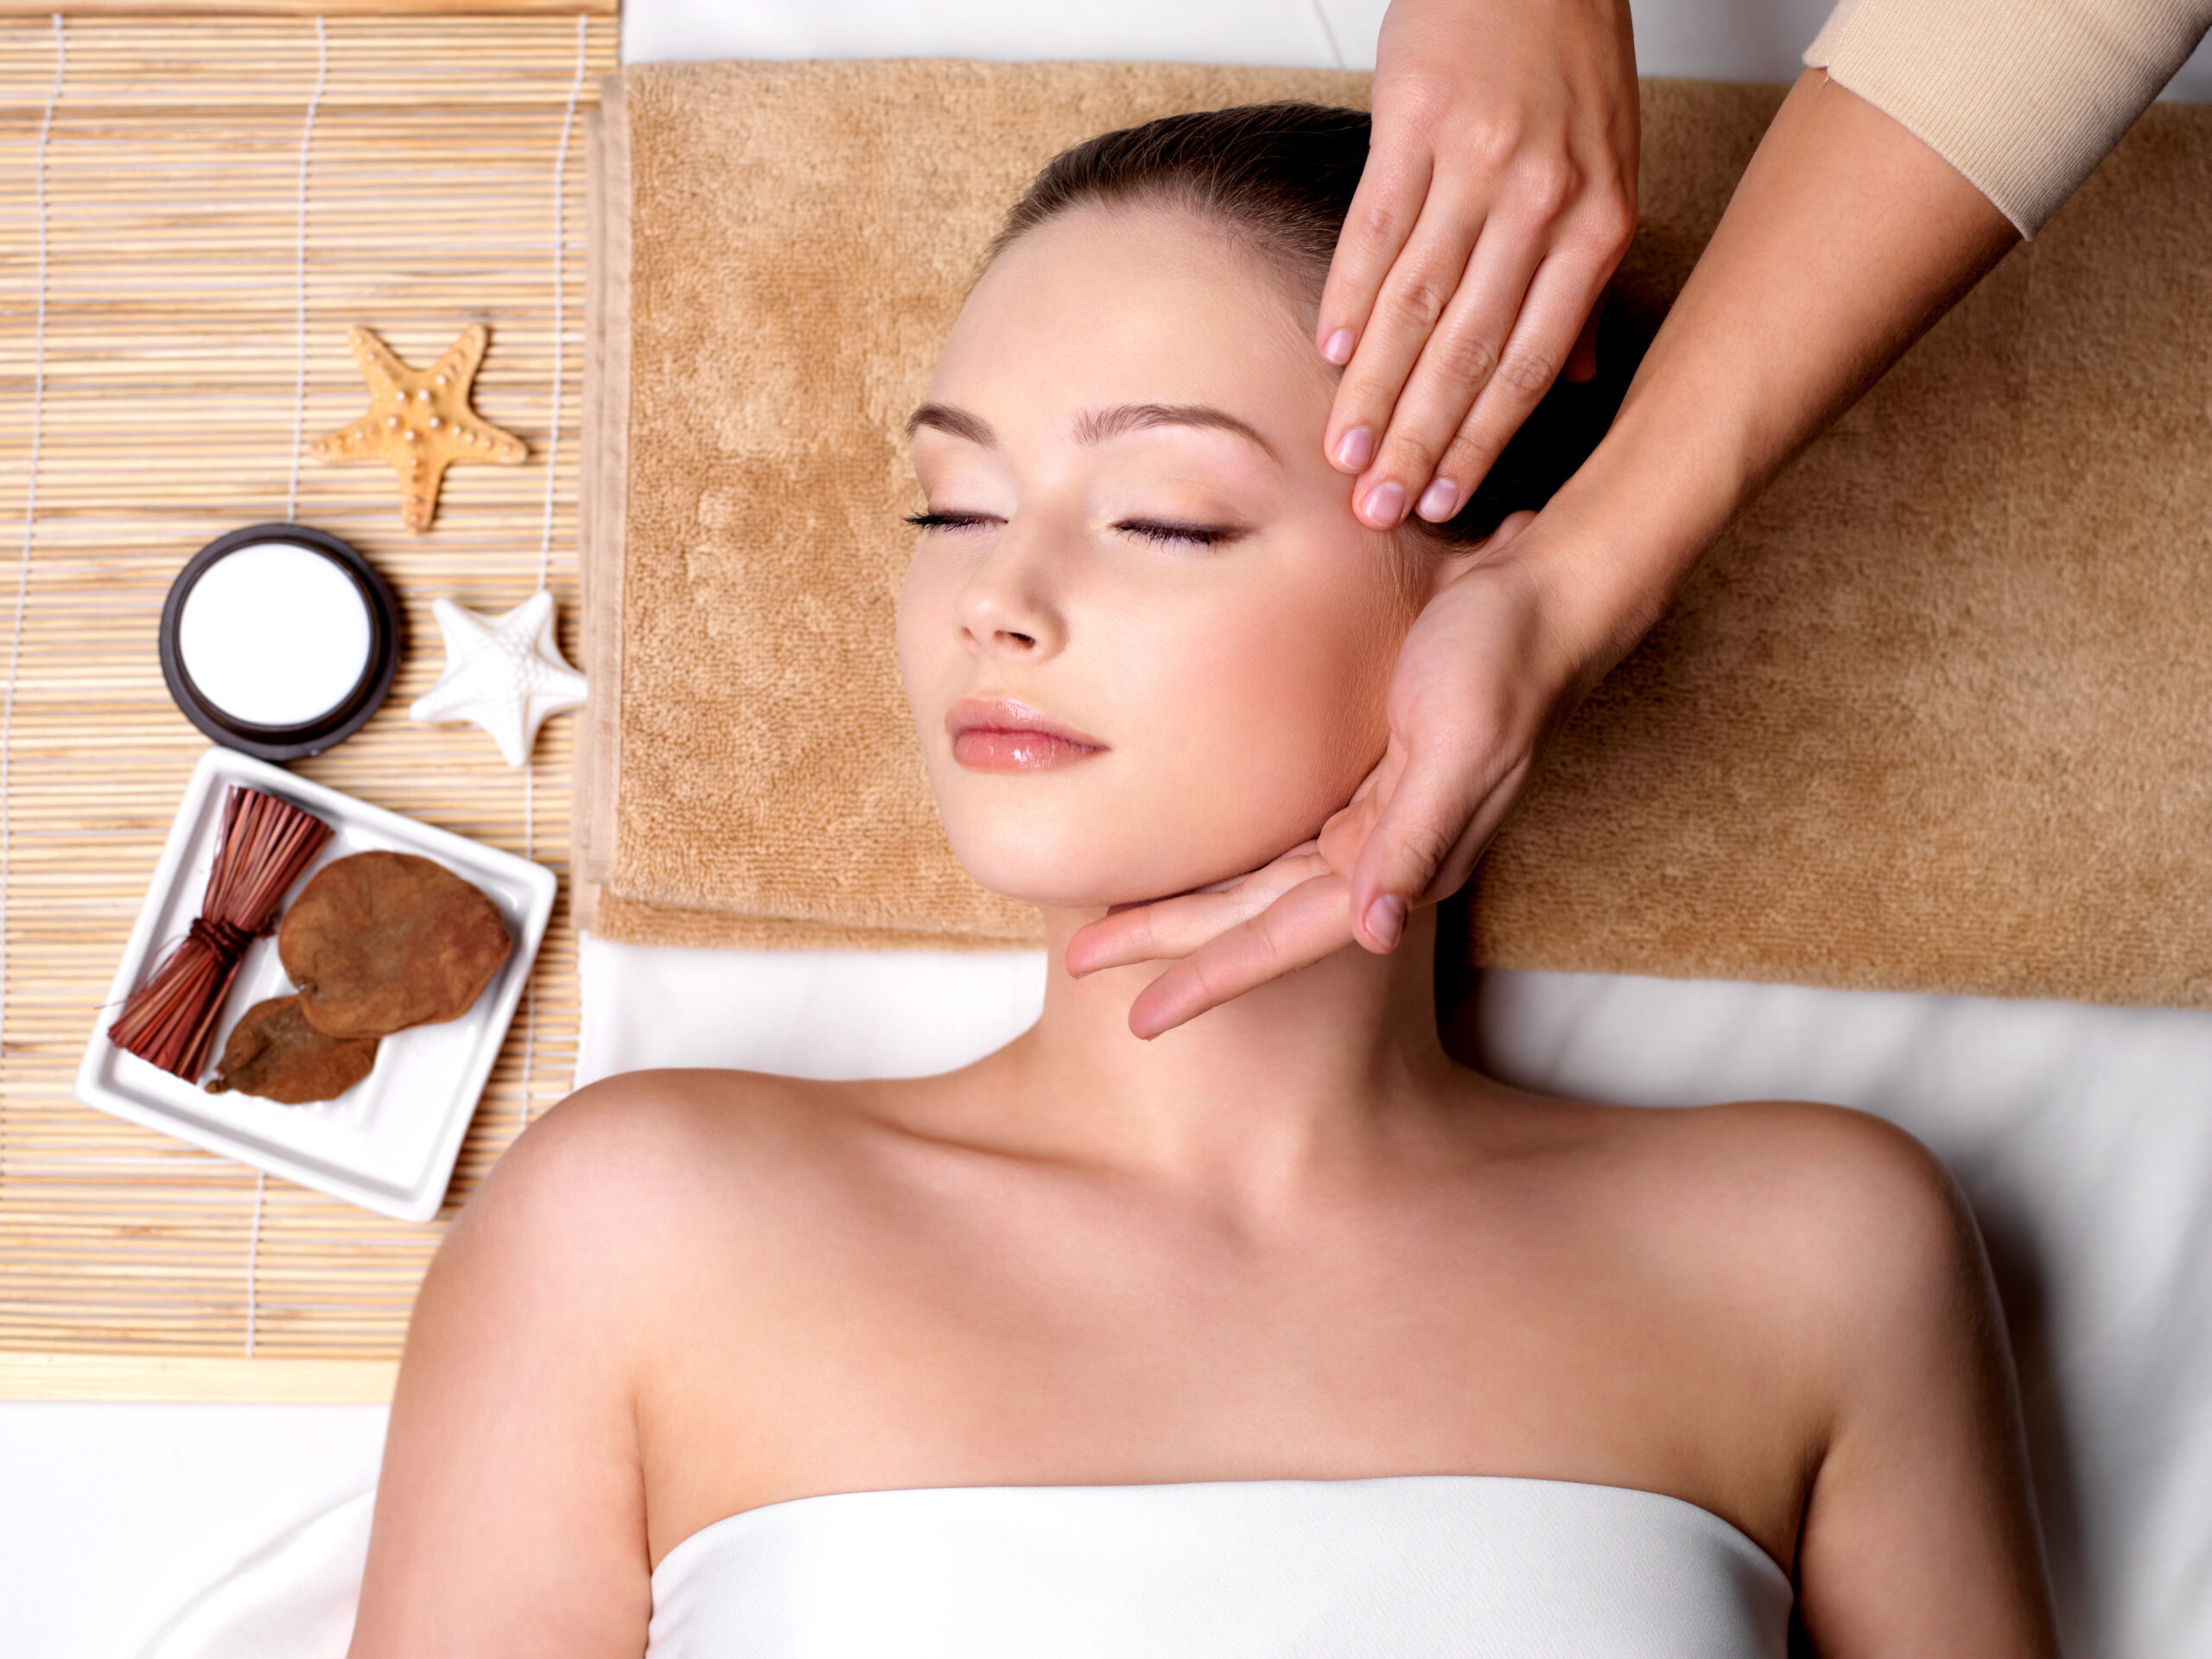 The main reasons to buy a certificate for spa treatments: